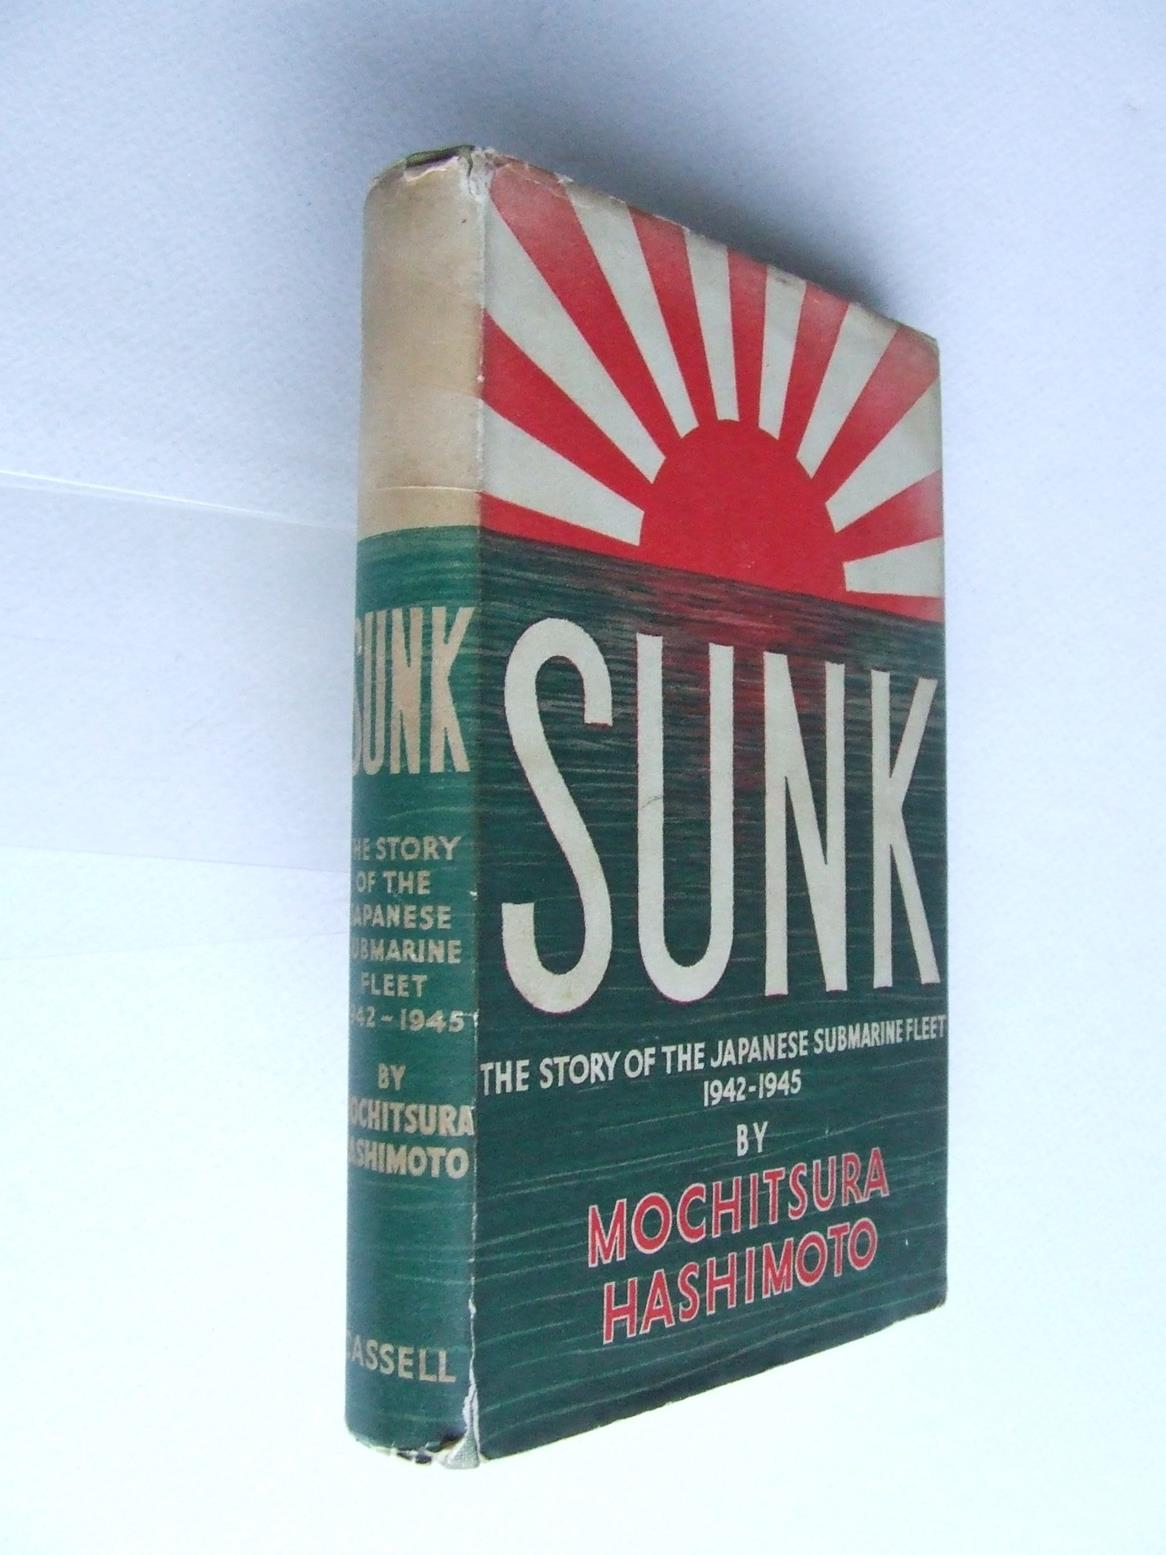 Sunk, the story of the Japanese submarine fleet 1942-1945